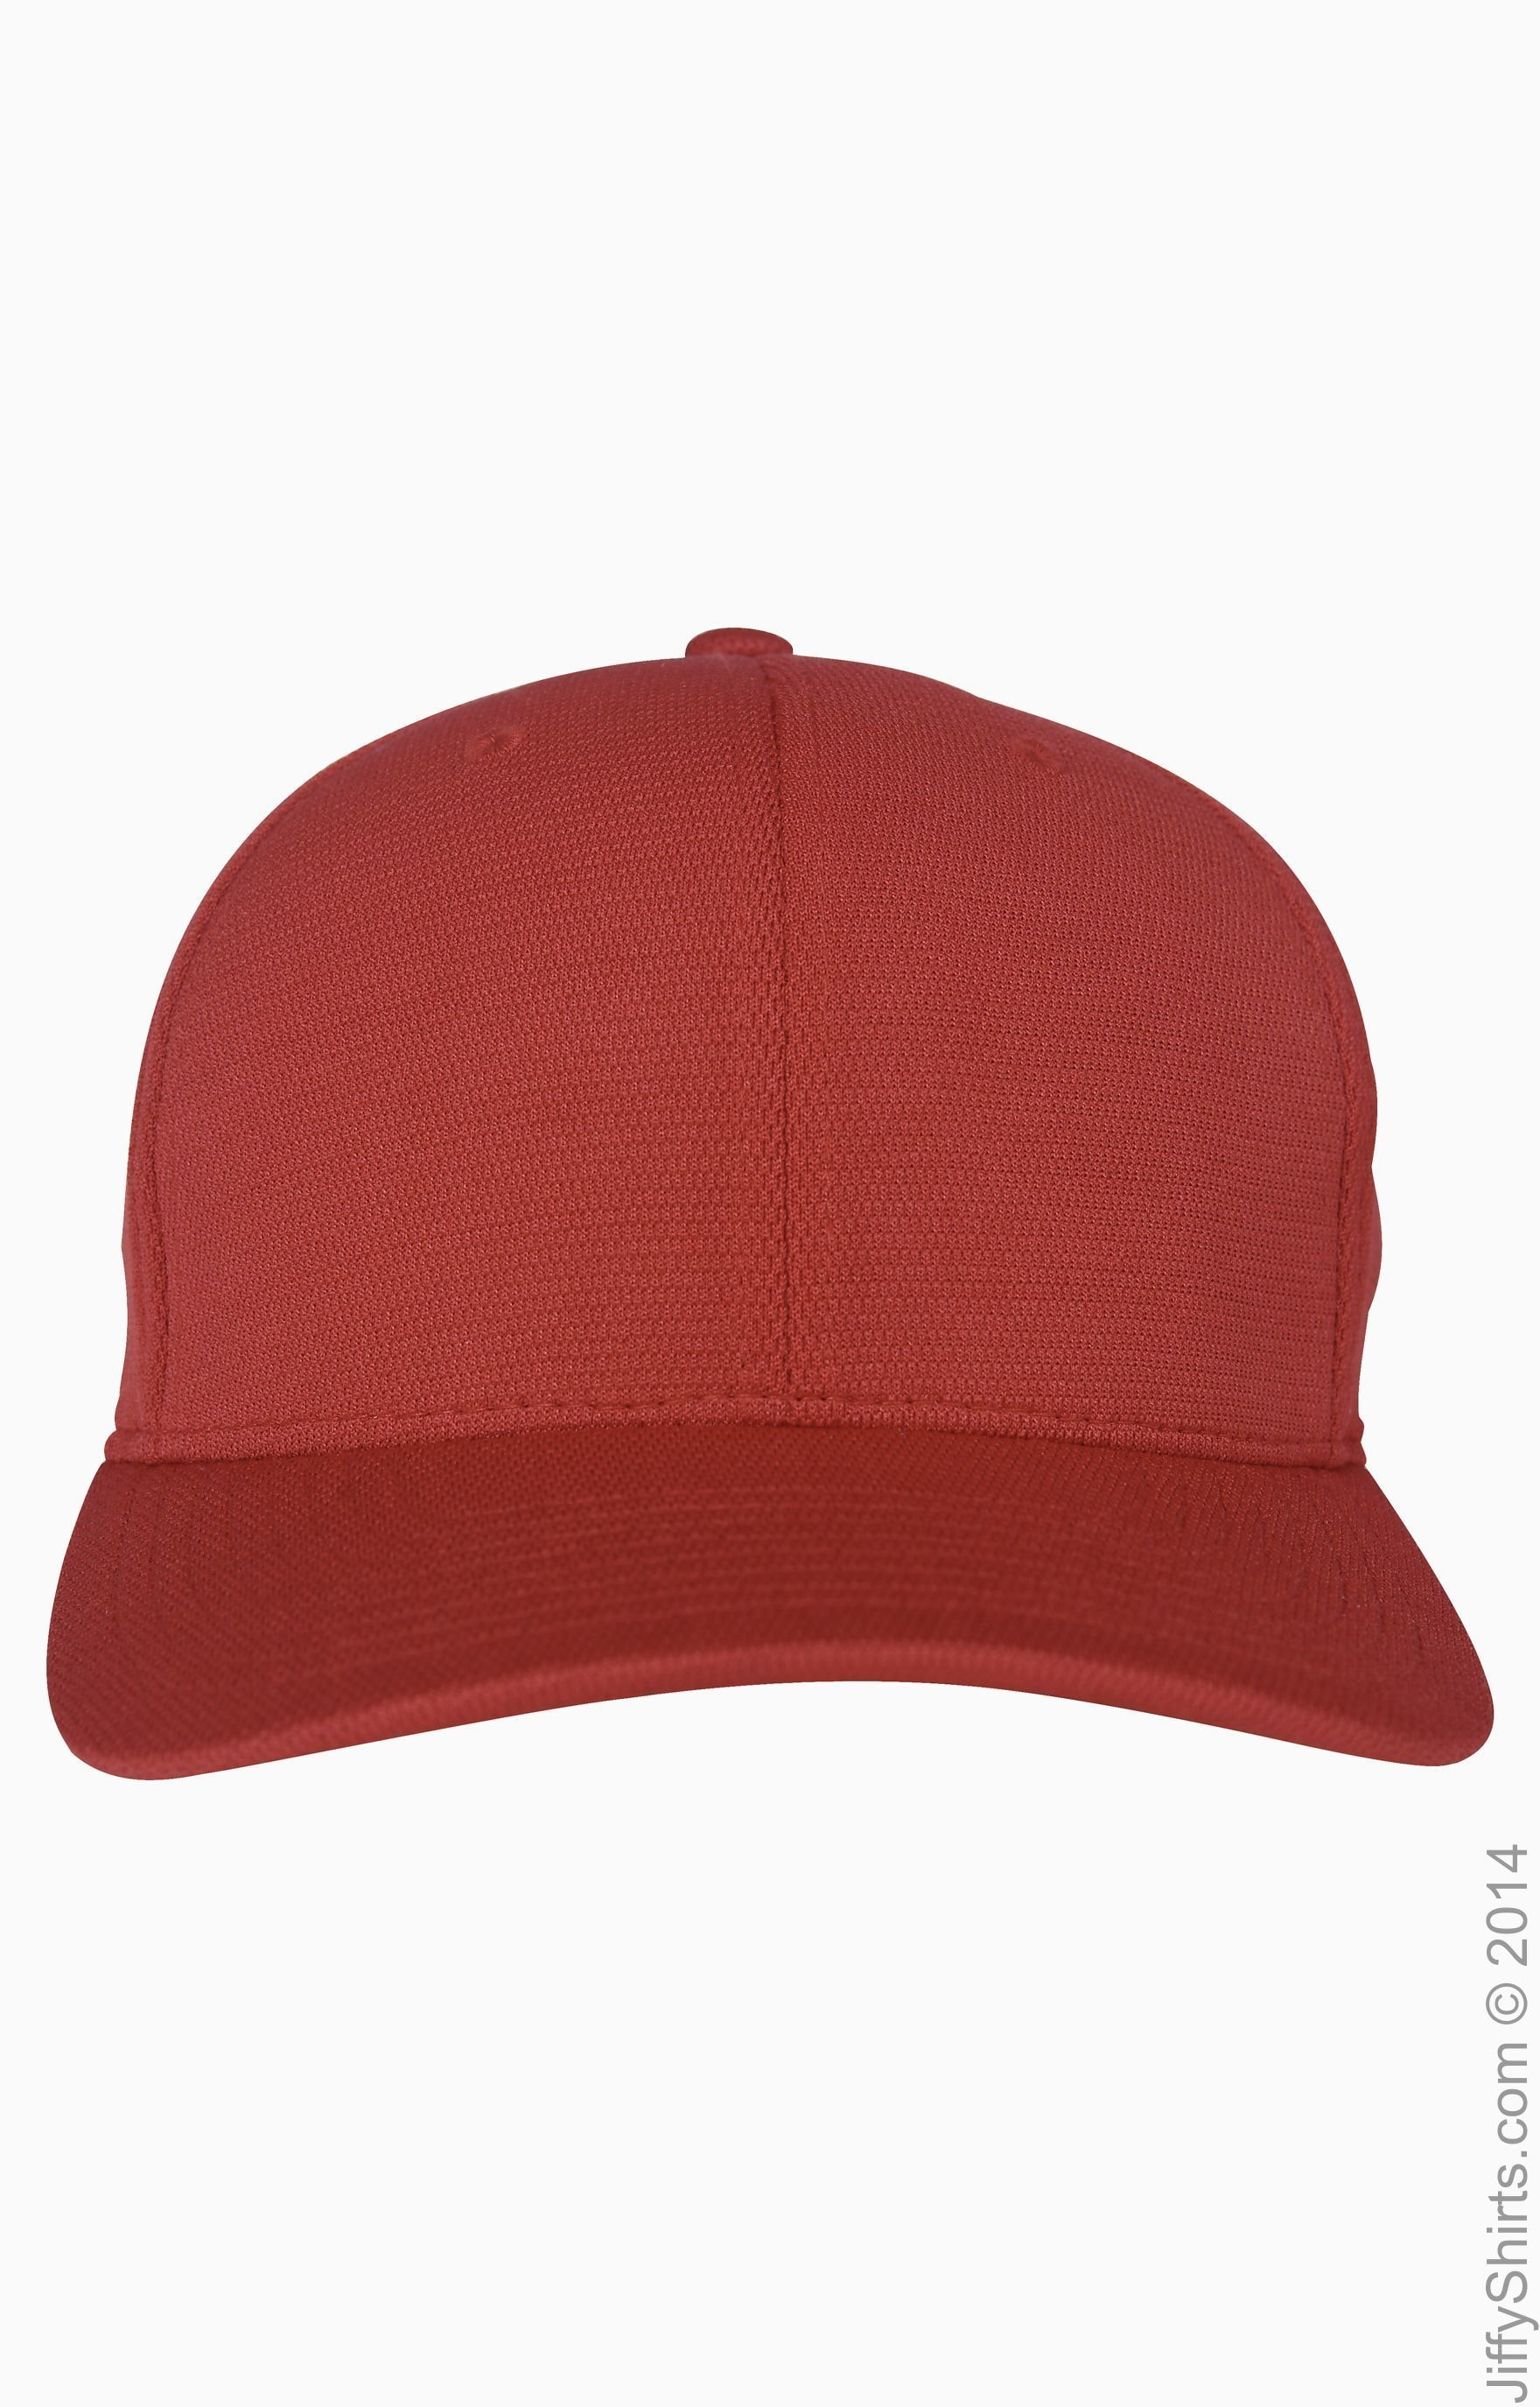 6597 - Red